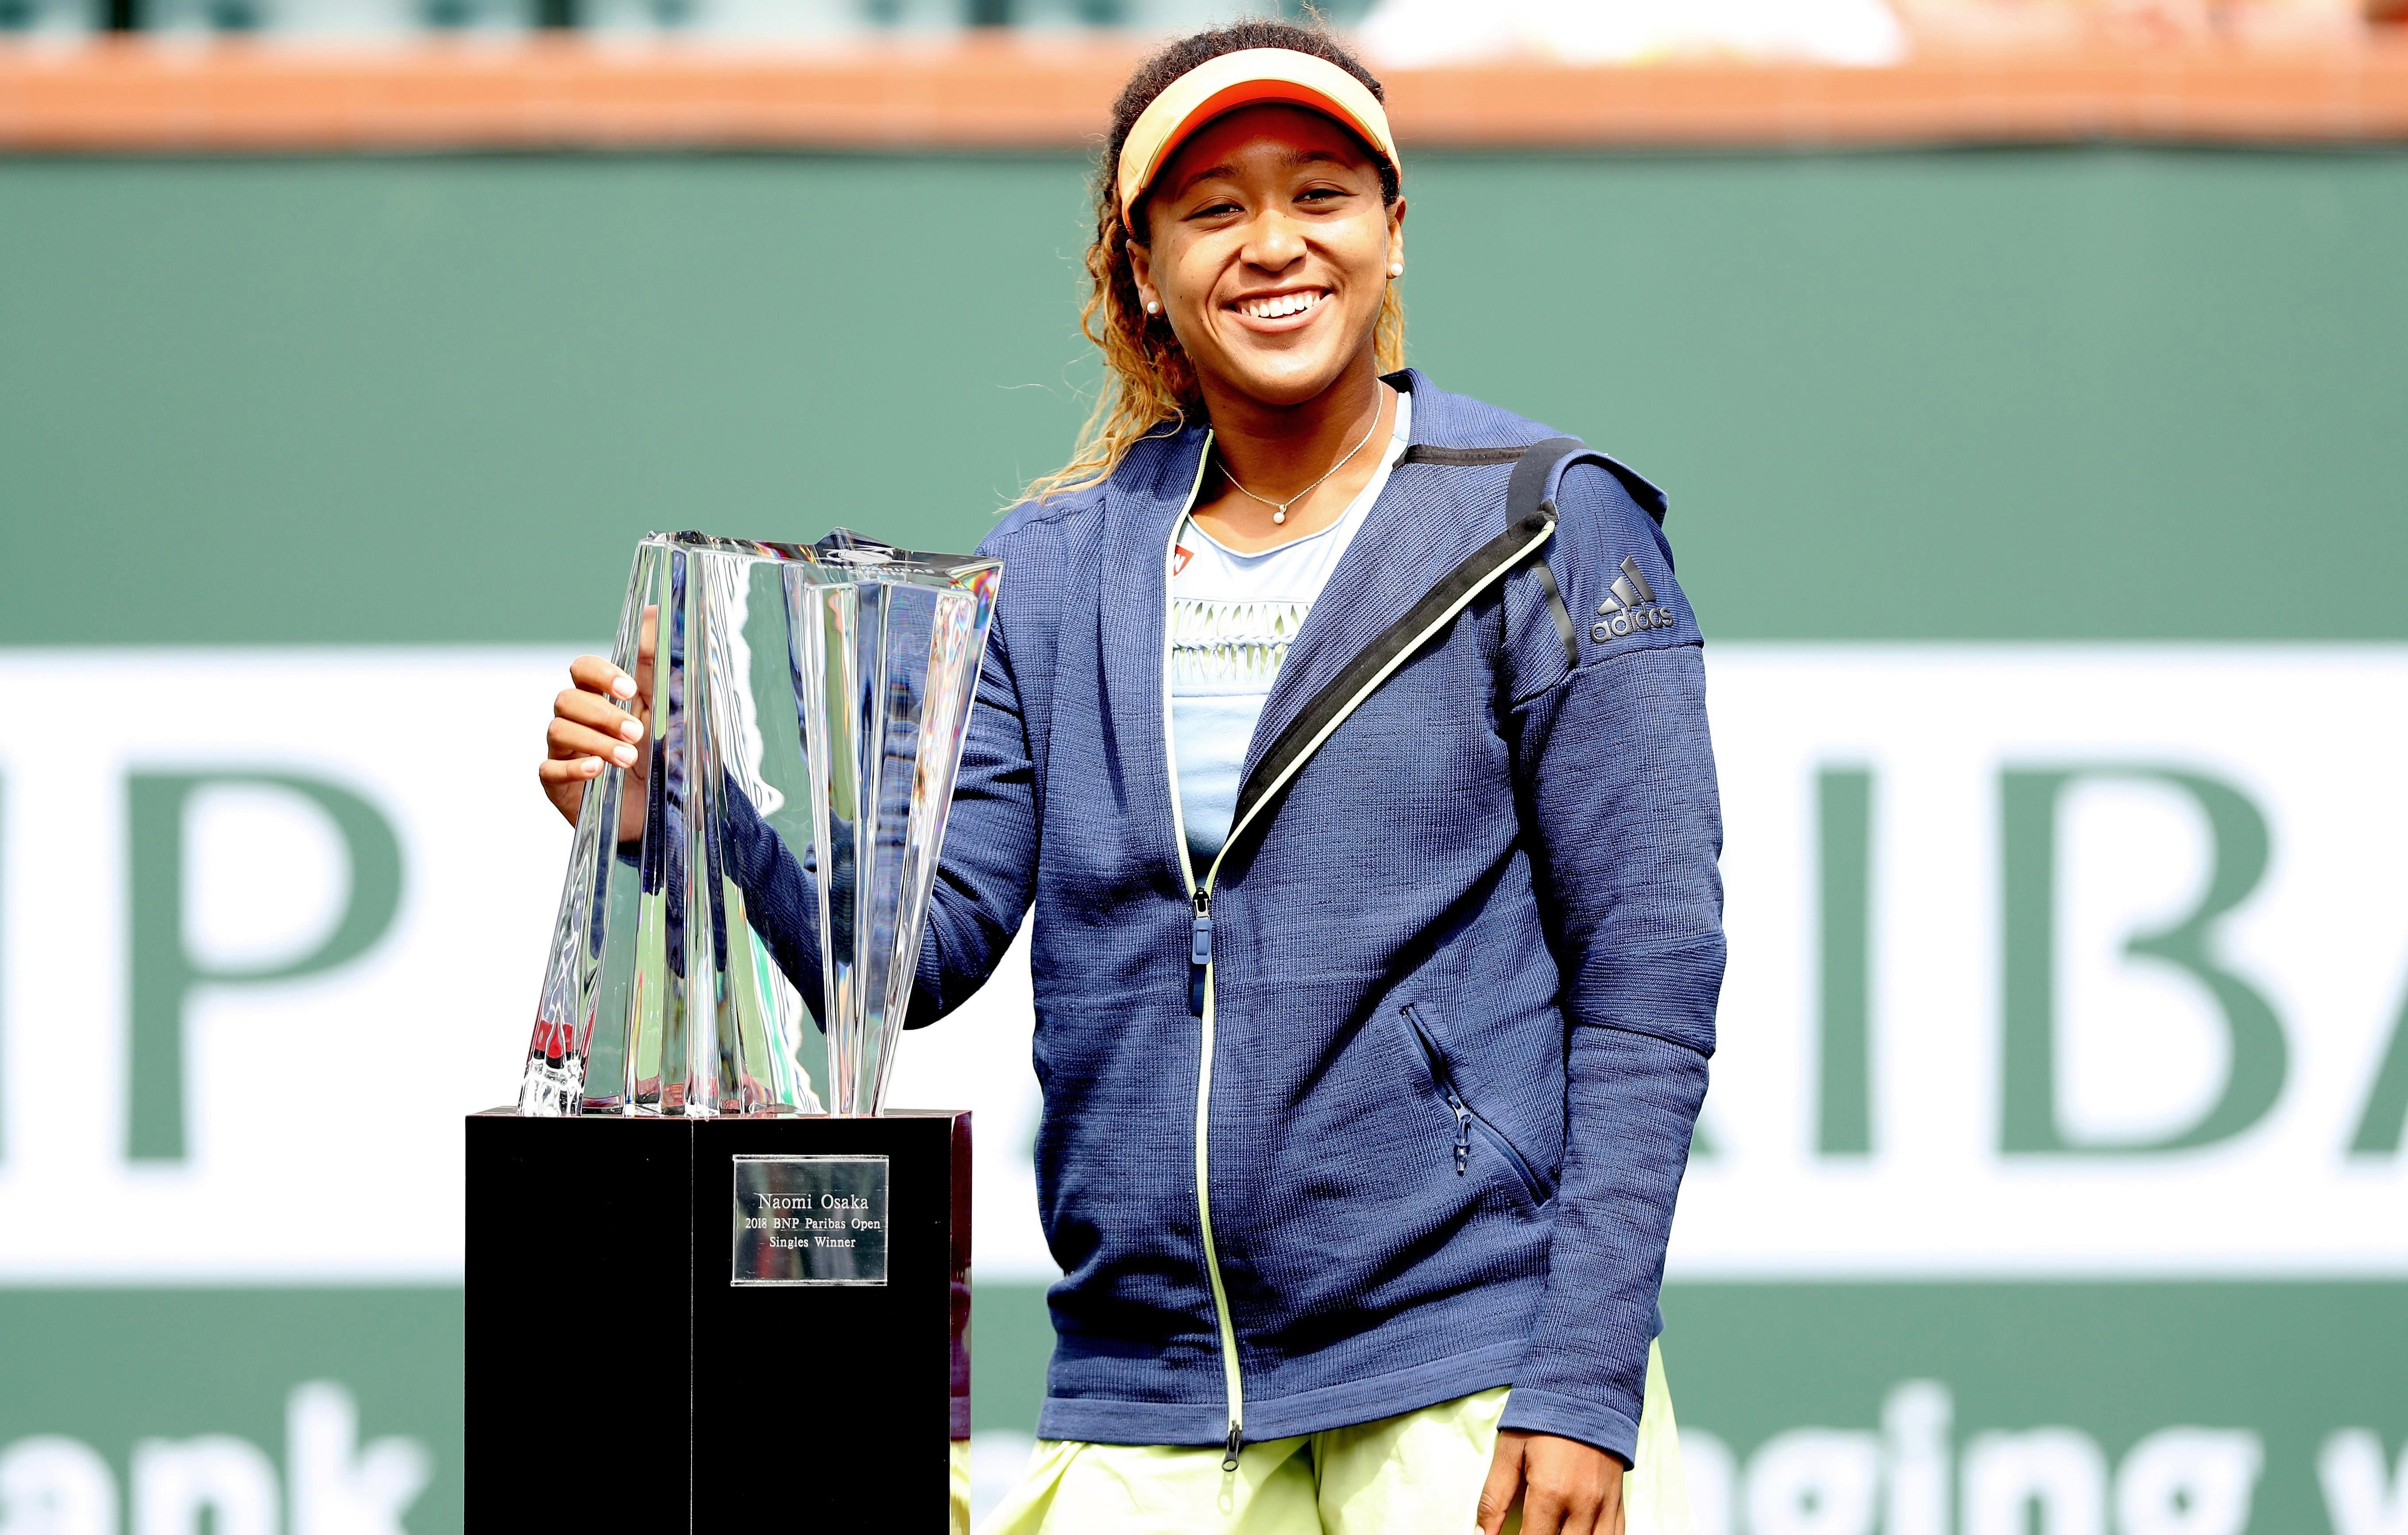 Osaka won the Indian Wells tournament in March - her first title